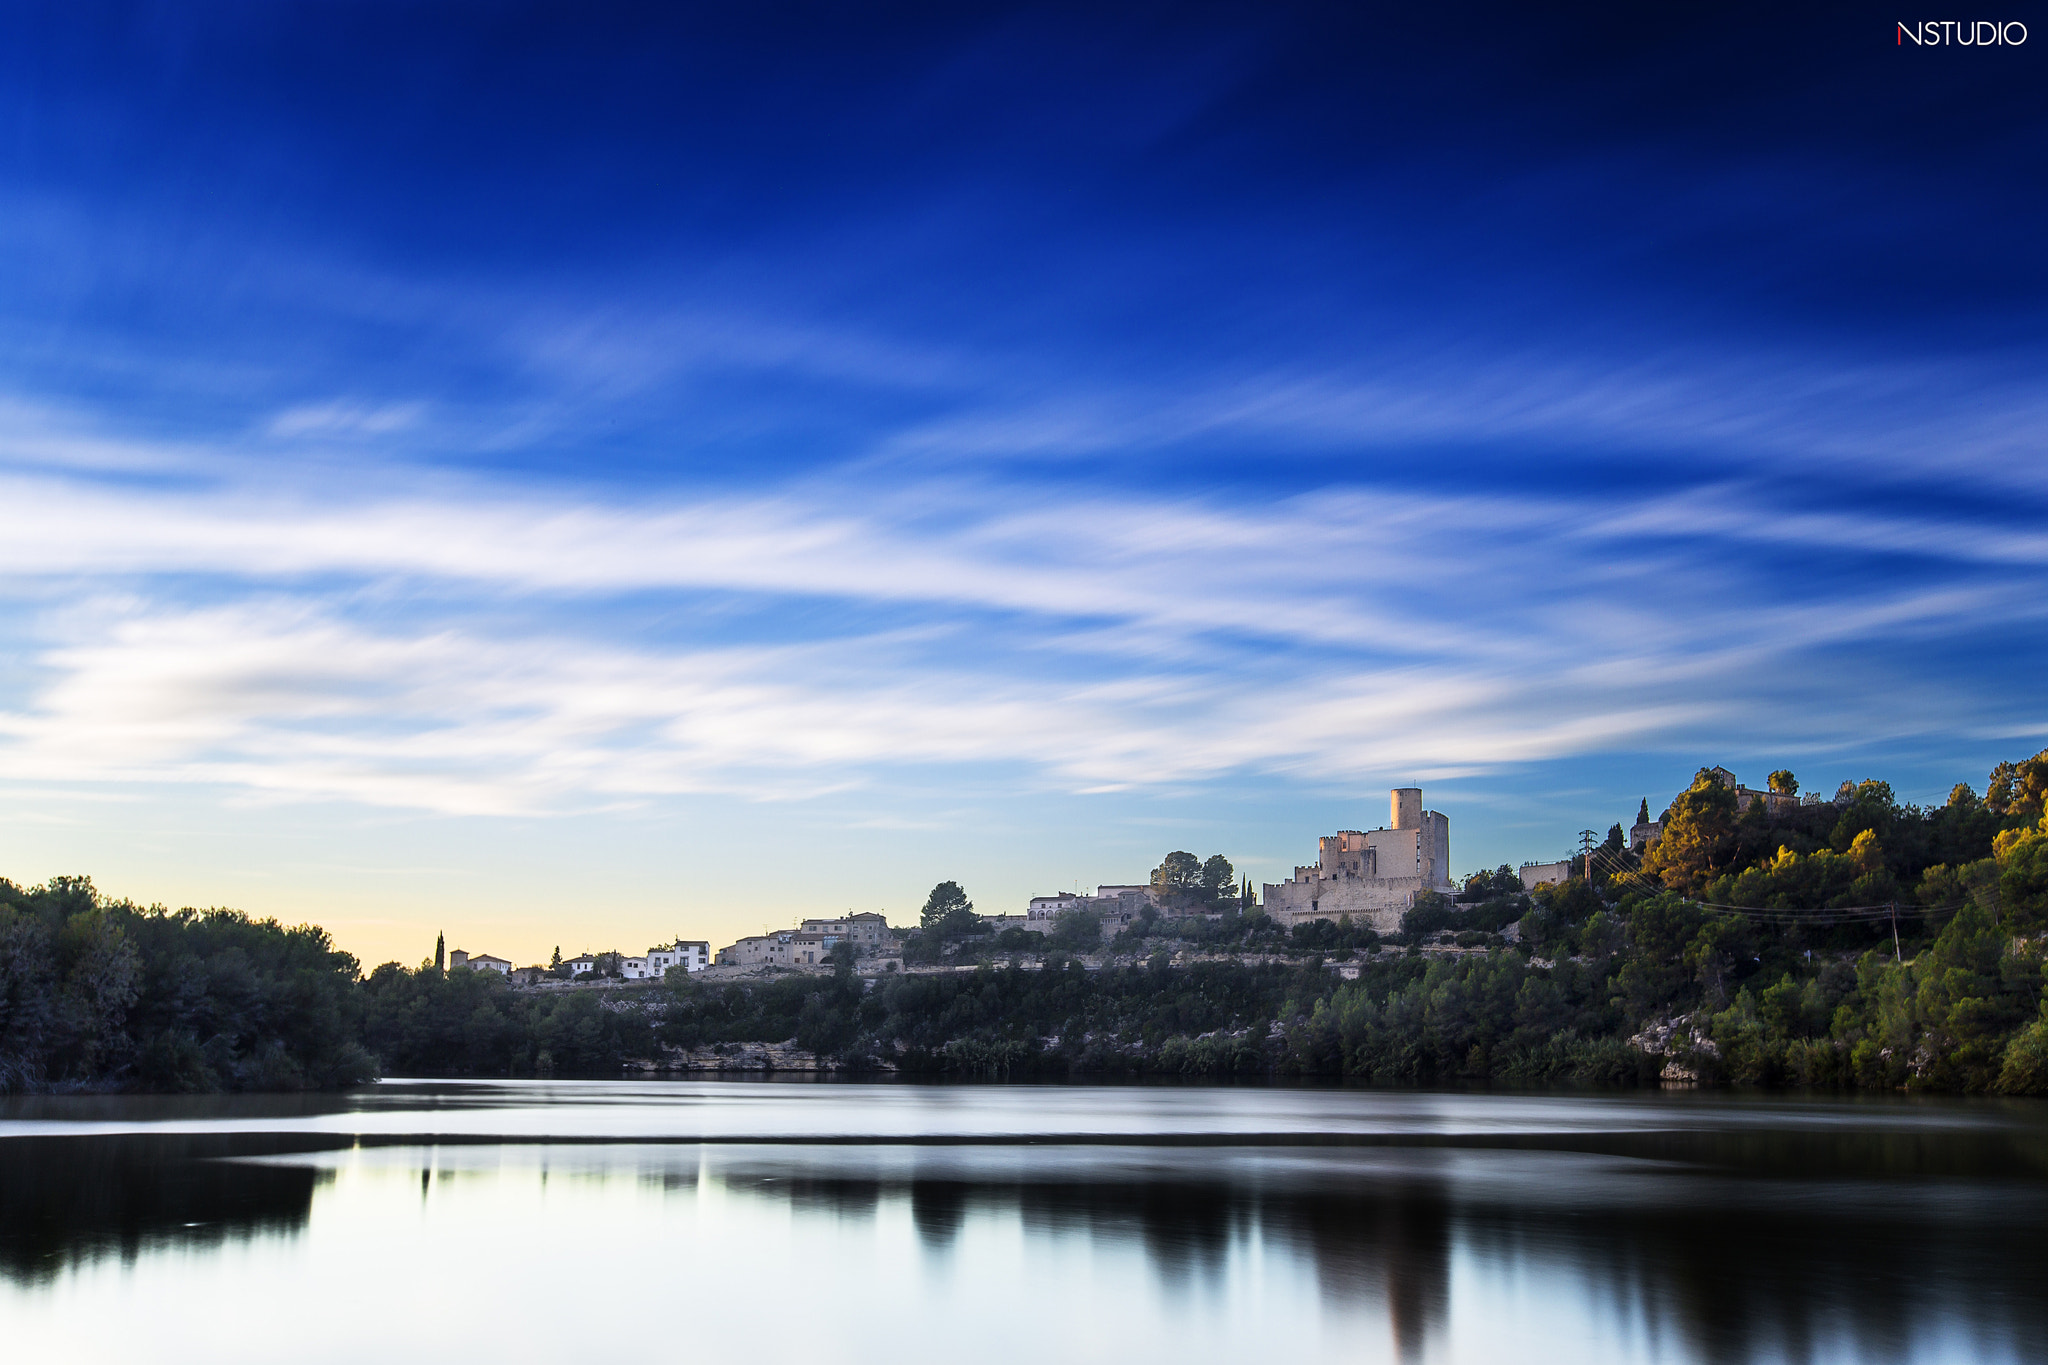 Photograph Castellet Sunset II - Catalonia by NSTUDIO PHOTO on 500px